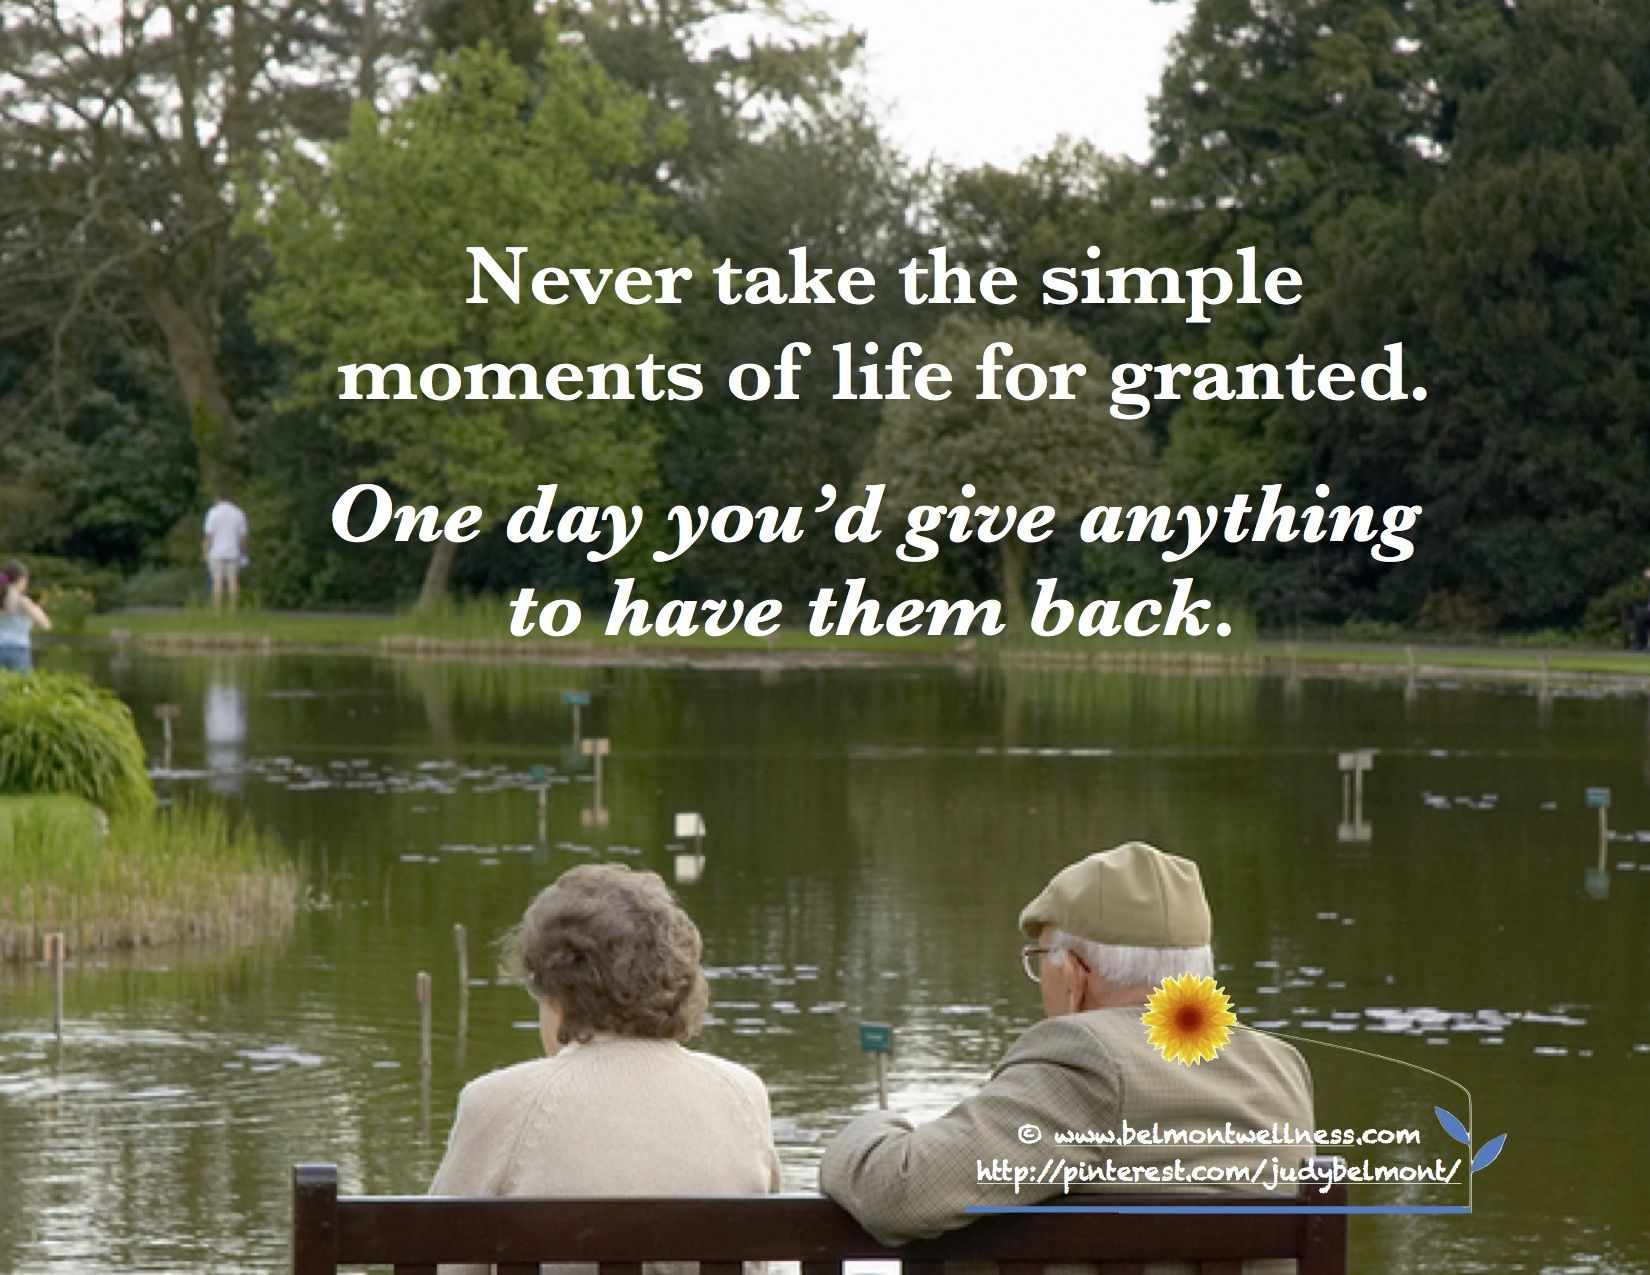 Parents Quotes Inspirational Sayings on Parents Respect Wallpapers Inspiring Quotes Pinterest